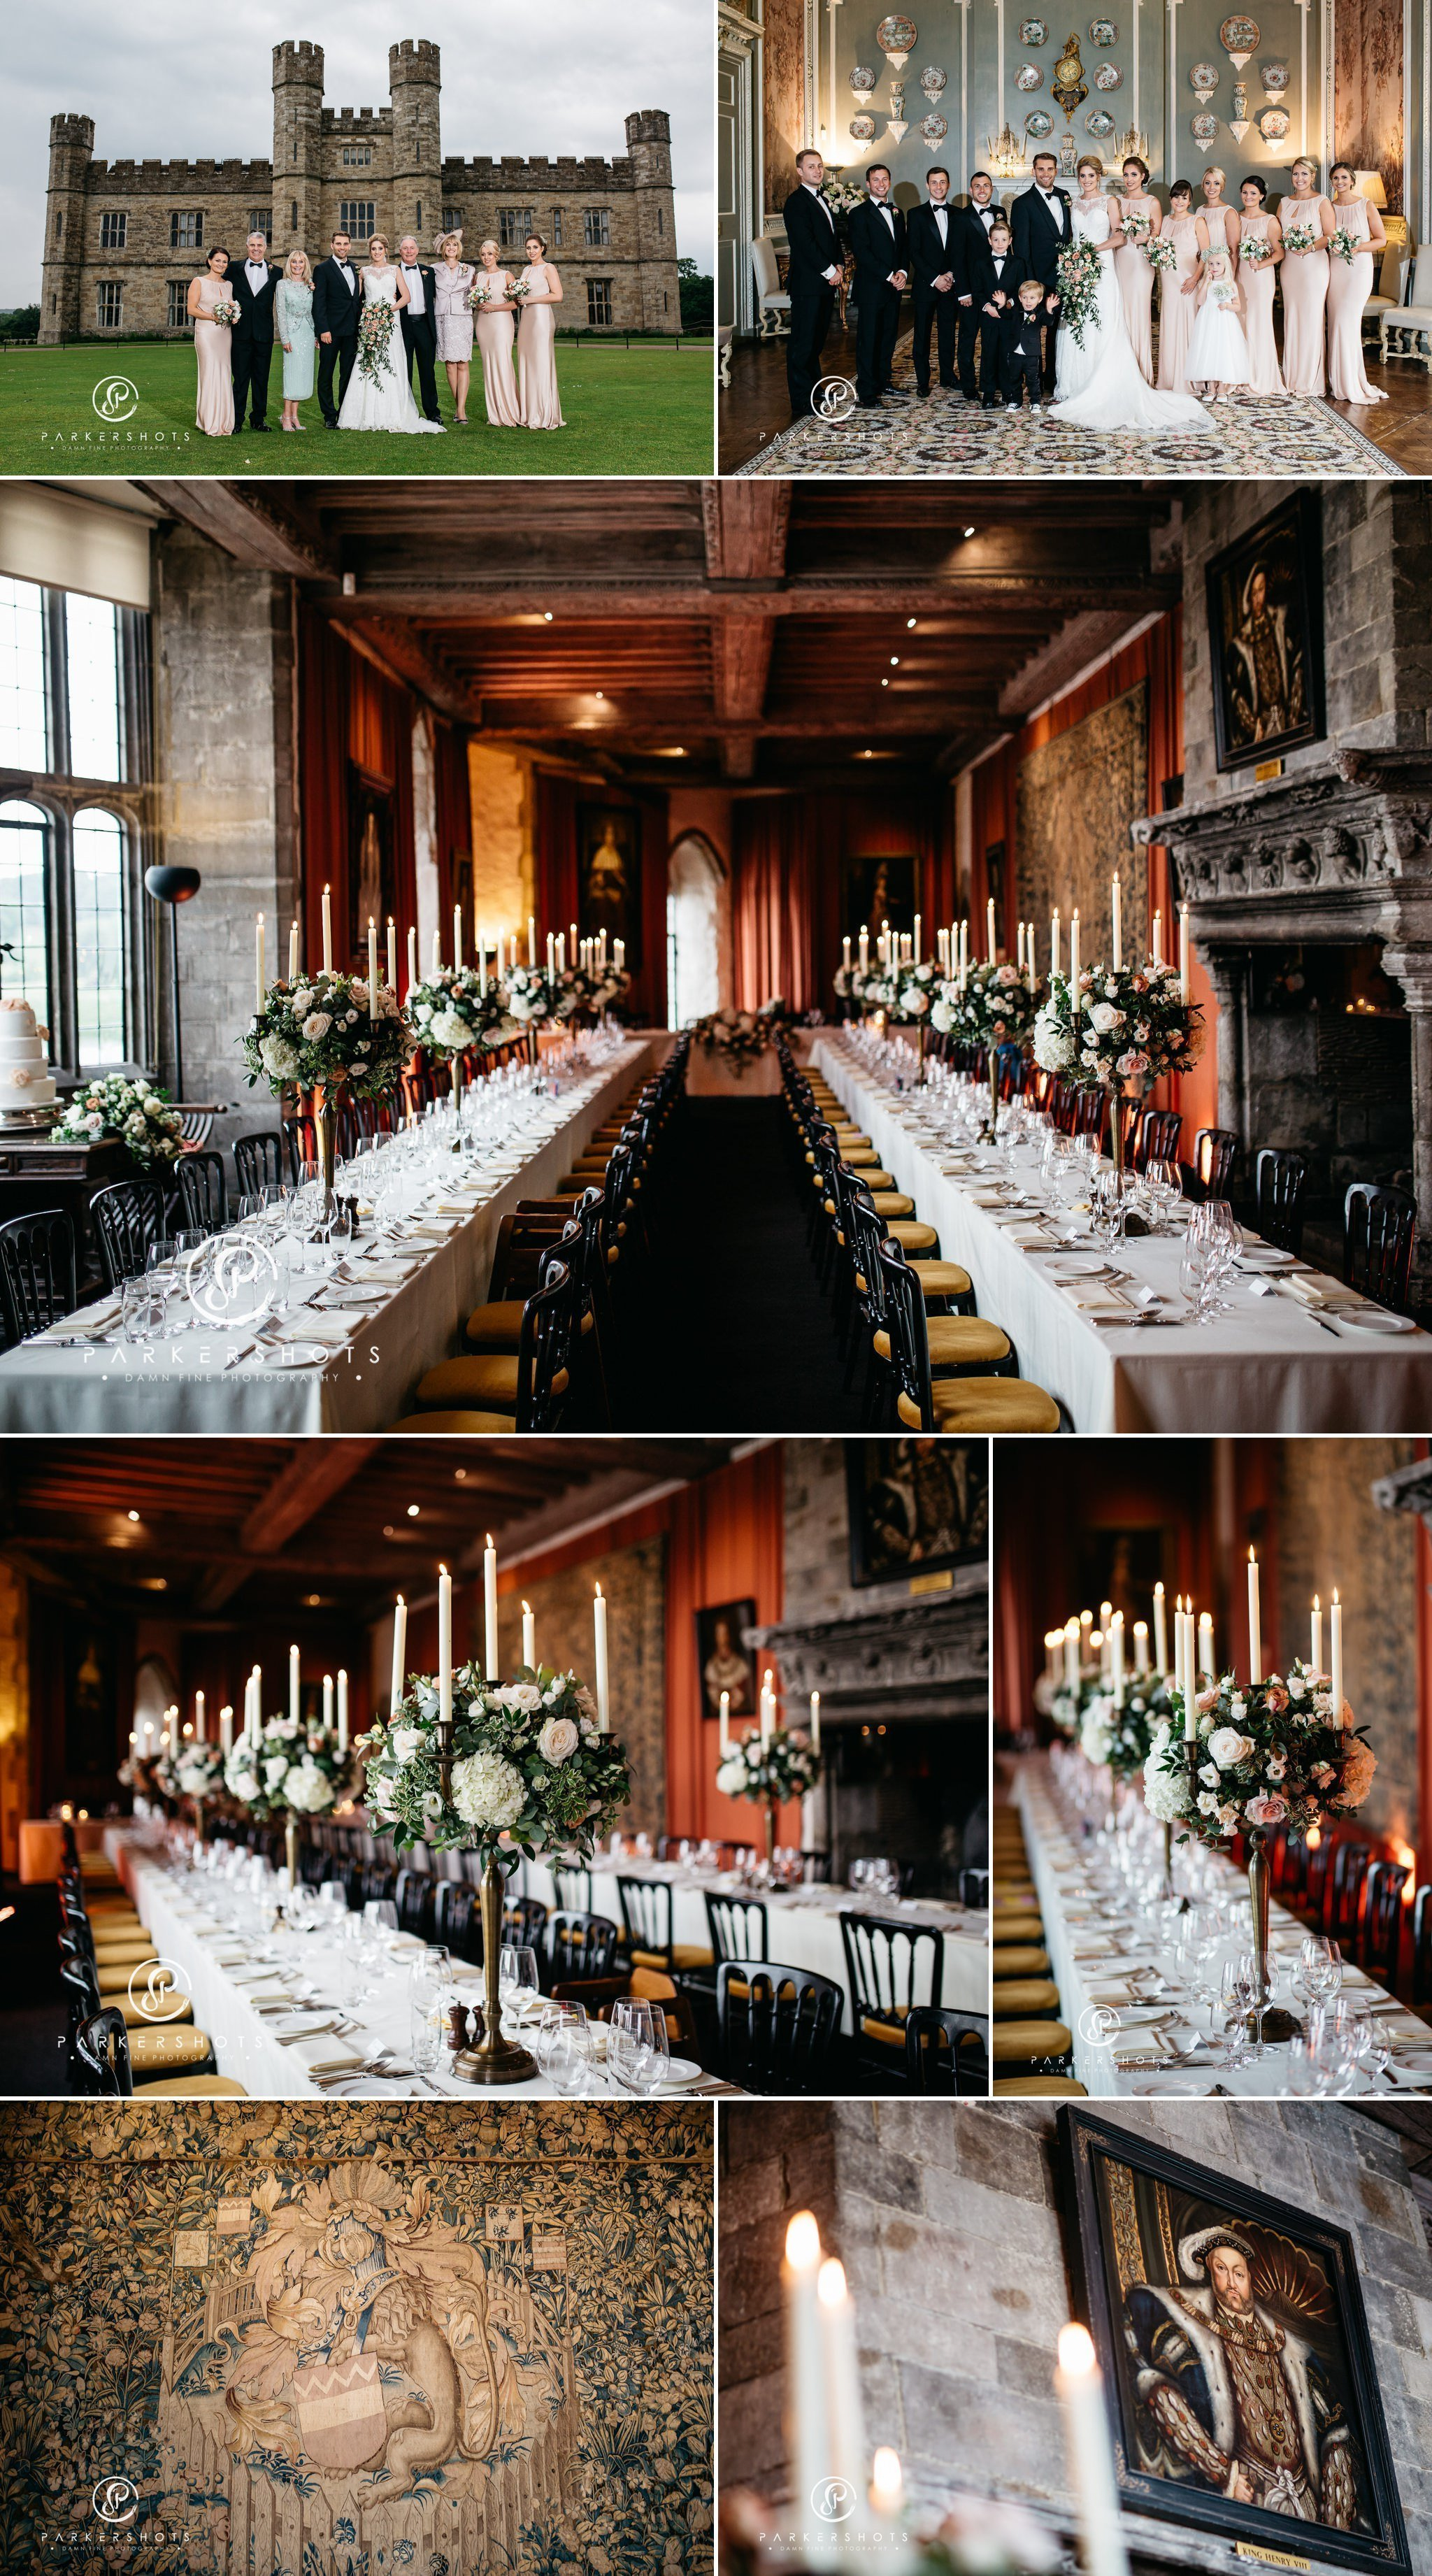 Wedding breakfast room at Leeds Castle